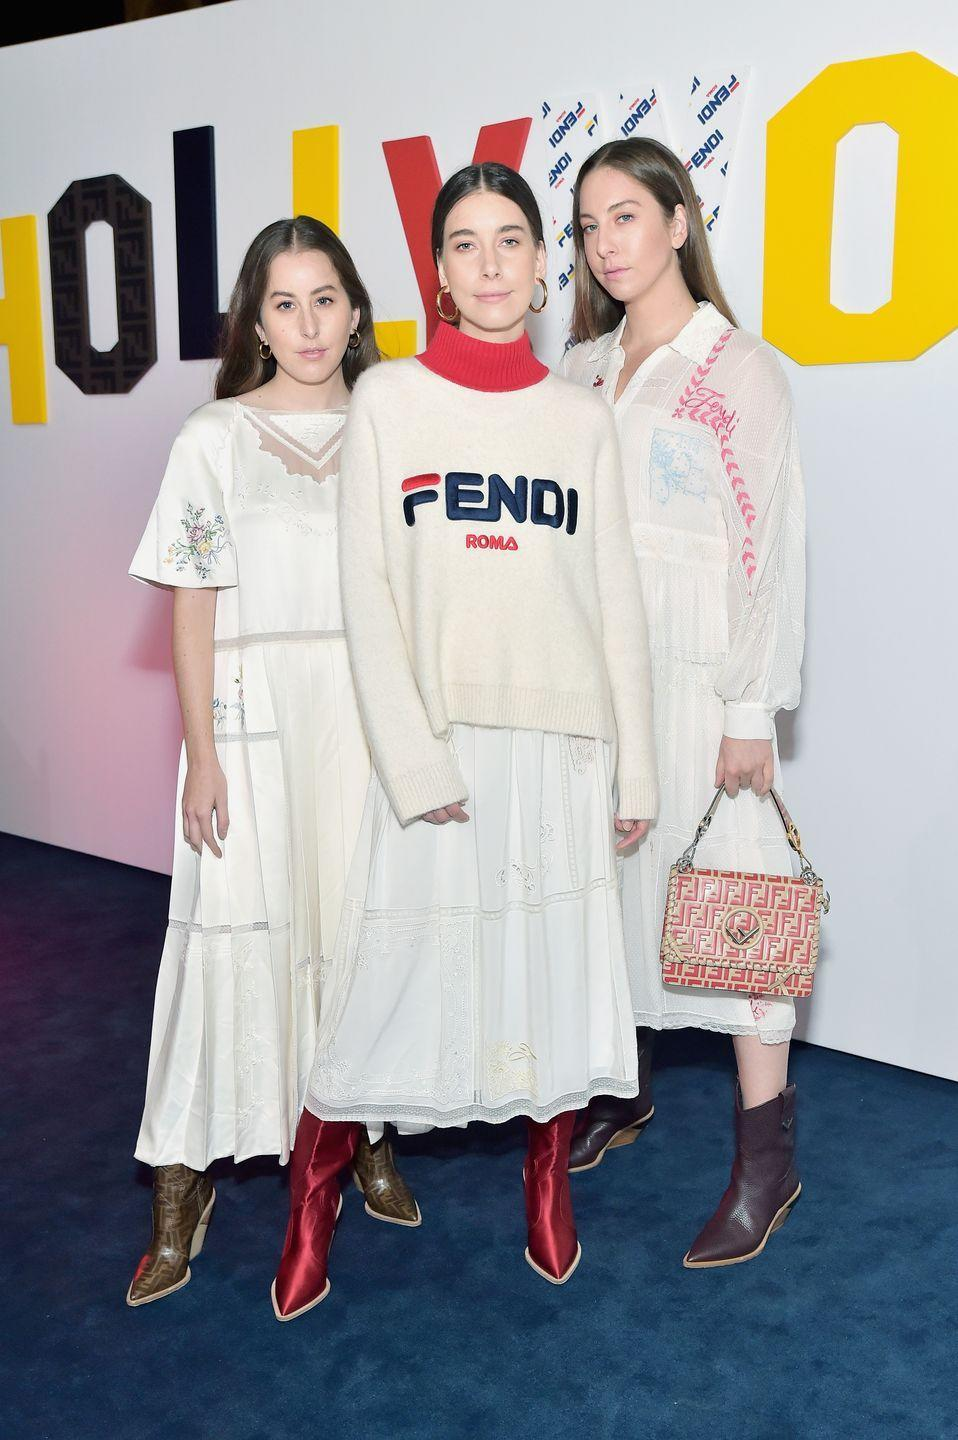 <p>The Haim sisters have a lot more in common then just music. All three have similar features, despite being different ages. Although they're often referred to as one unit, their ages range from 28 to 34. </p>